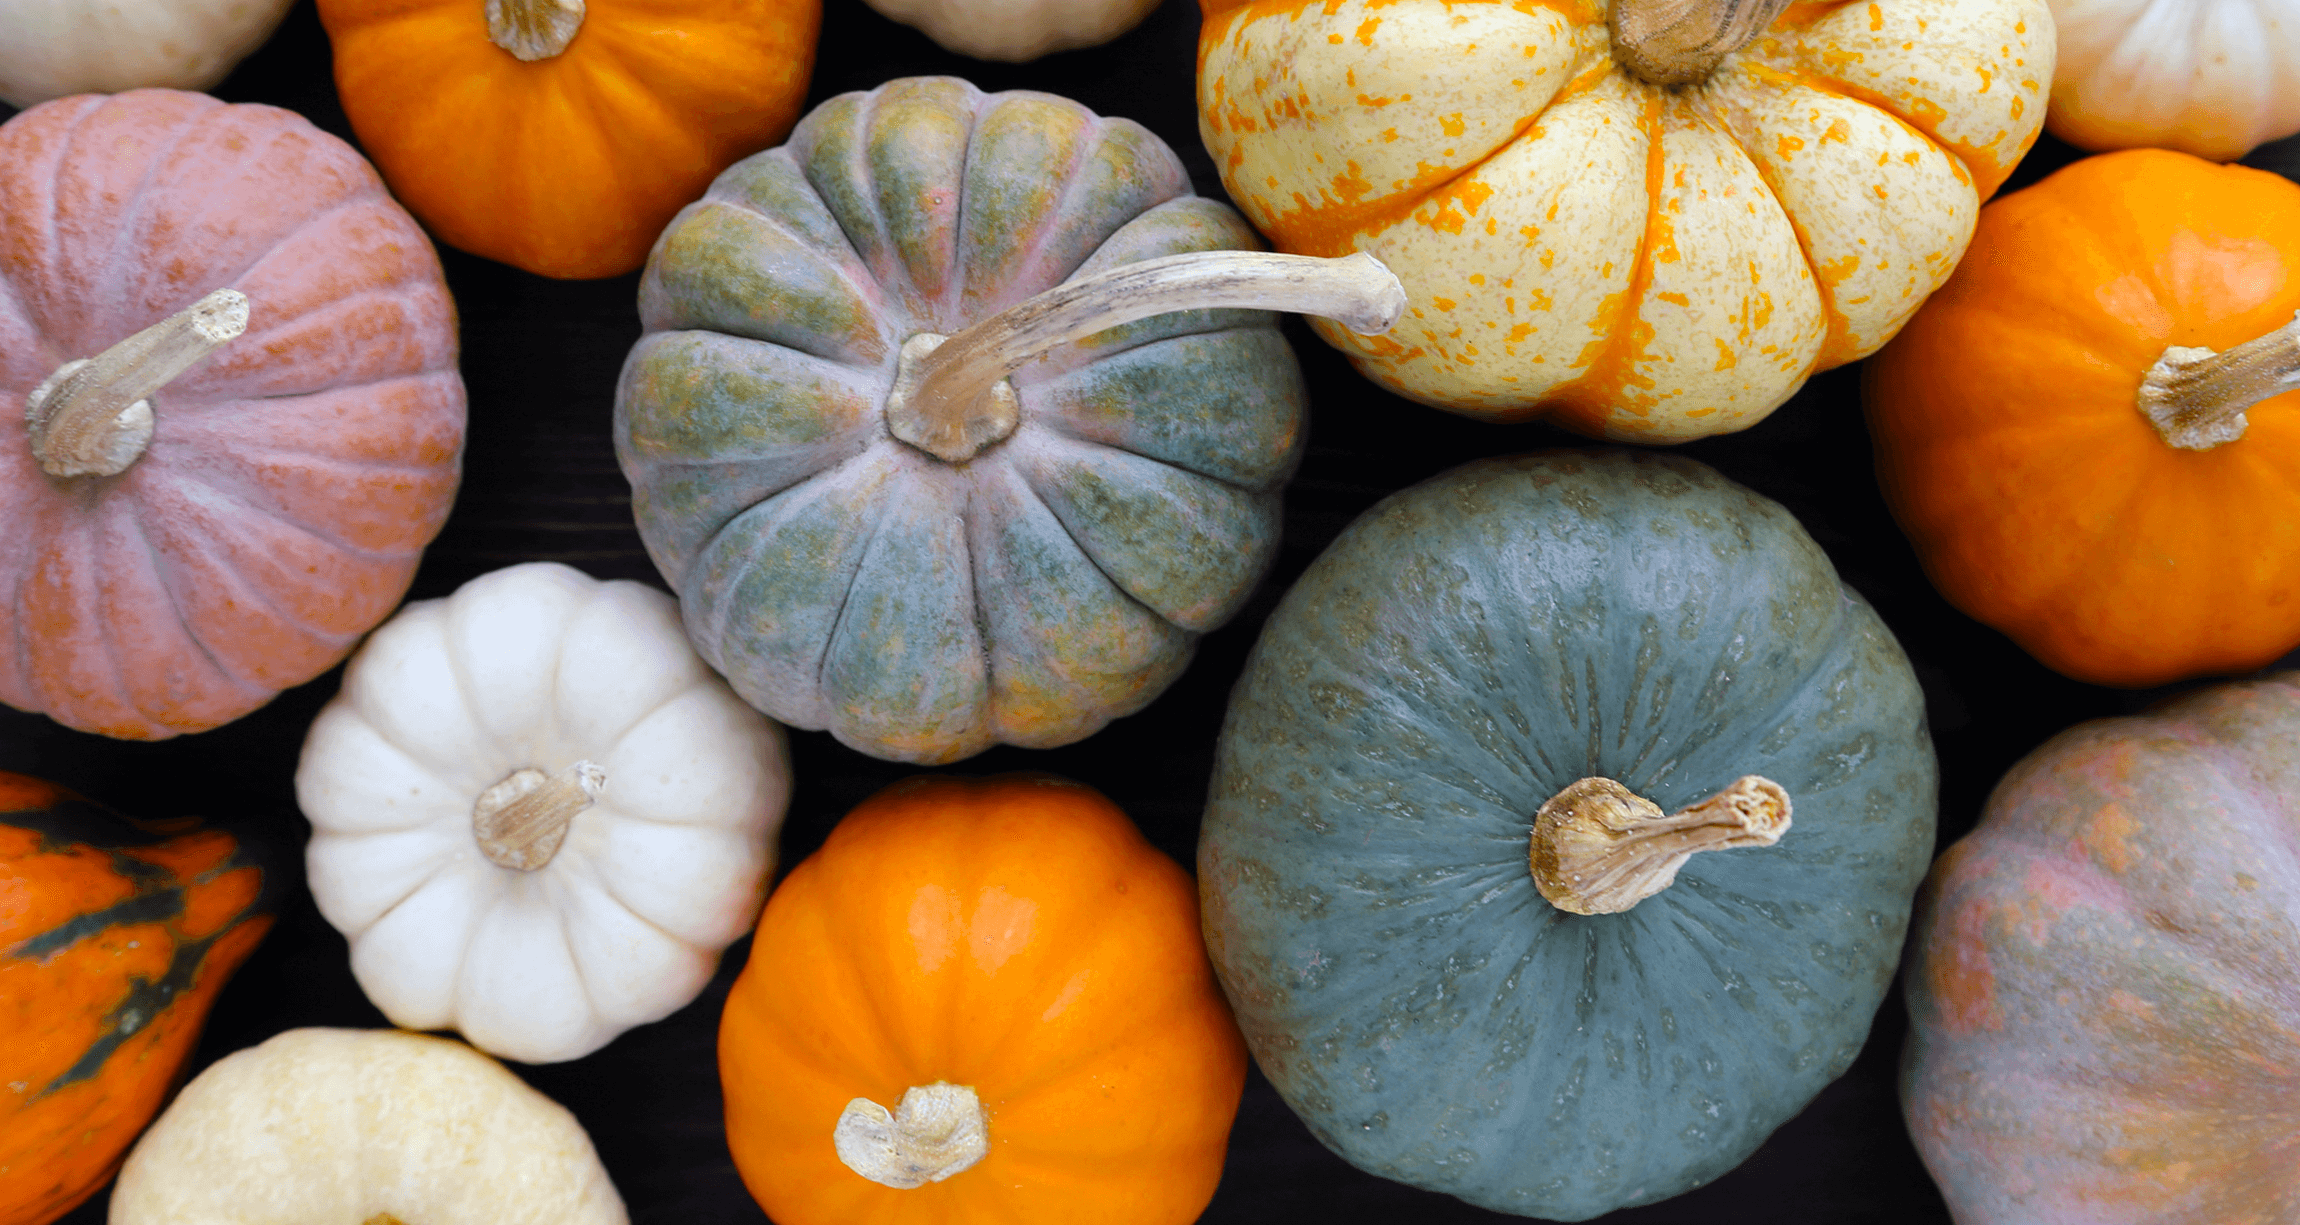 9 Proven Health Benefits of Pumpkins + 9 Truly Healthy Pumpkin Recipes (That Taste Delicious)